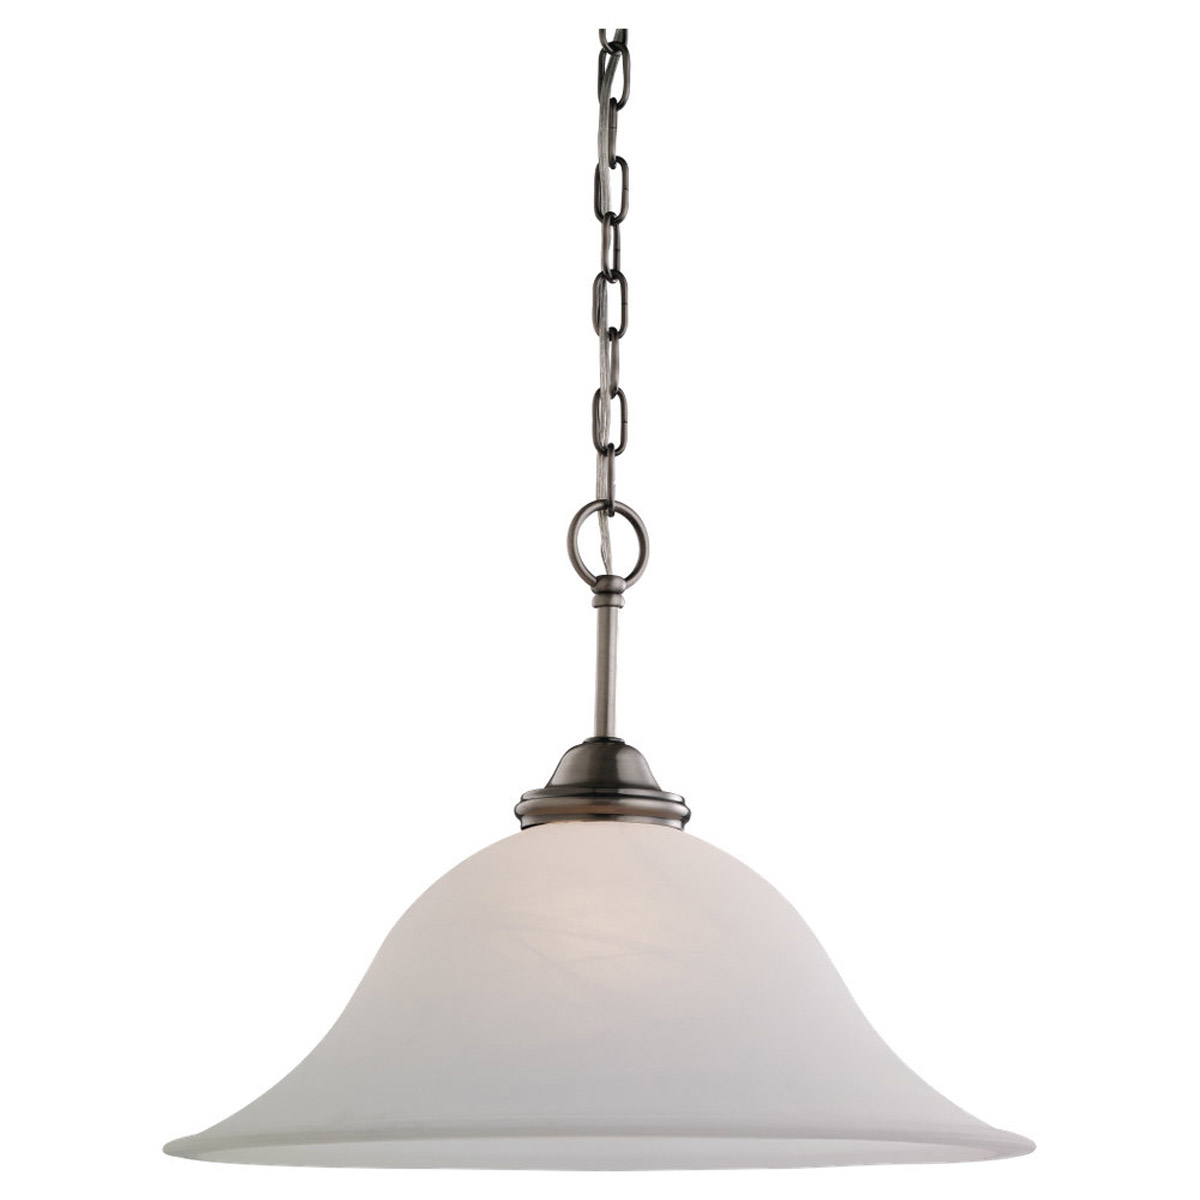 Sea Gull 65360-965 Rialto 1 Light 18 inch Antique Brushed Nickel Pendant Ceiling Light in Etched White Alabaster Glass photo